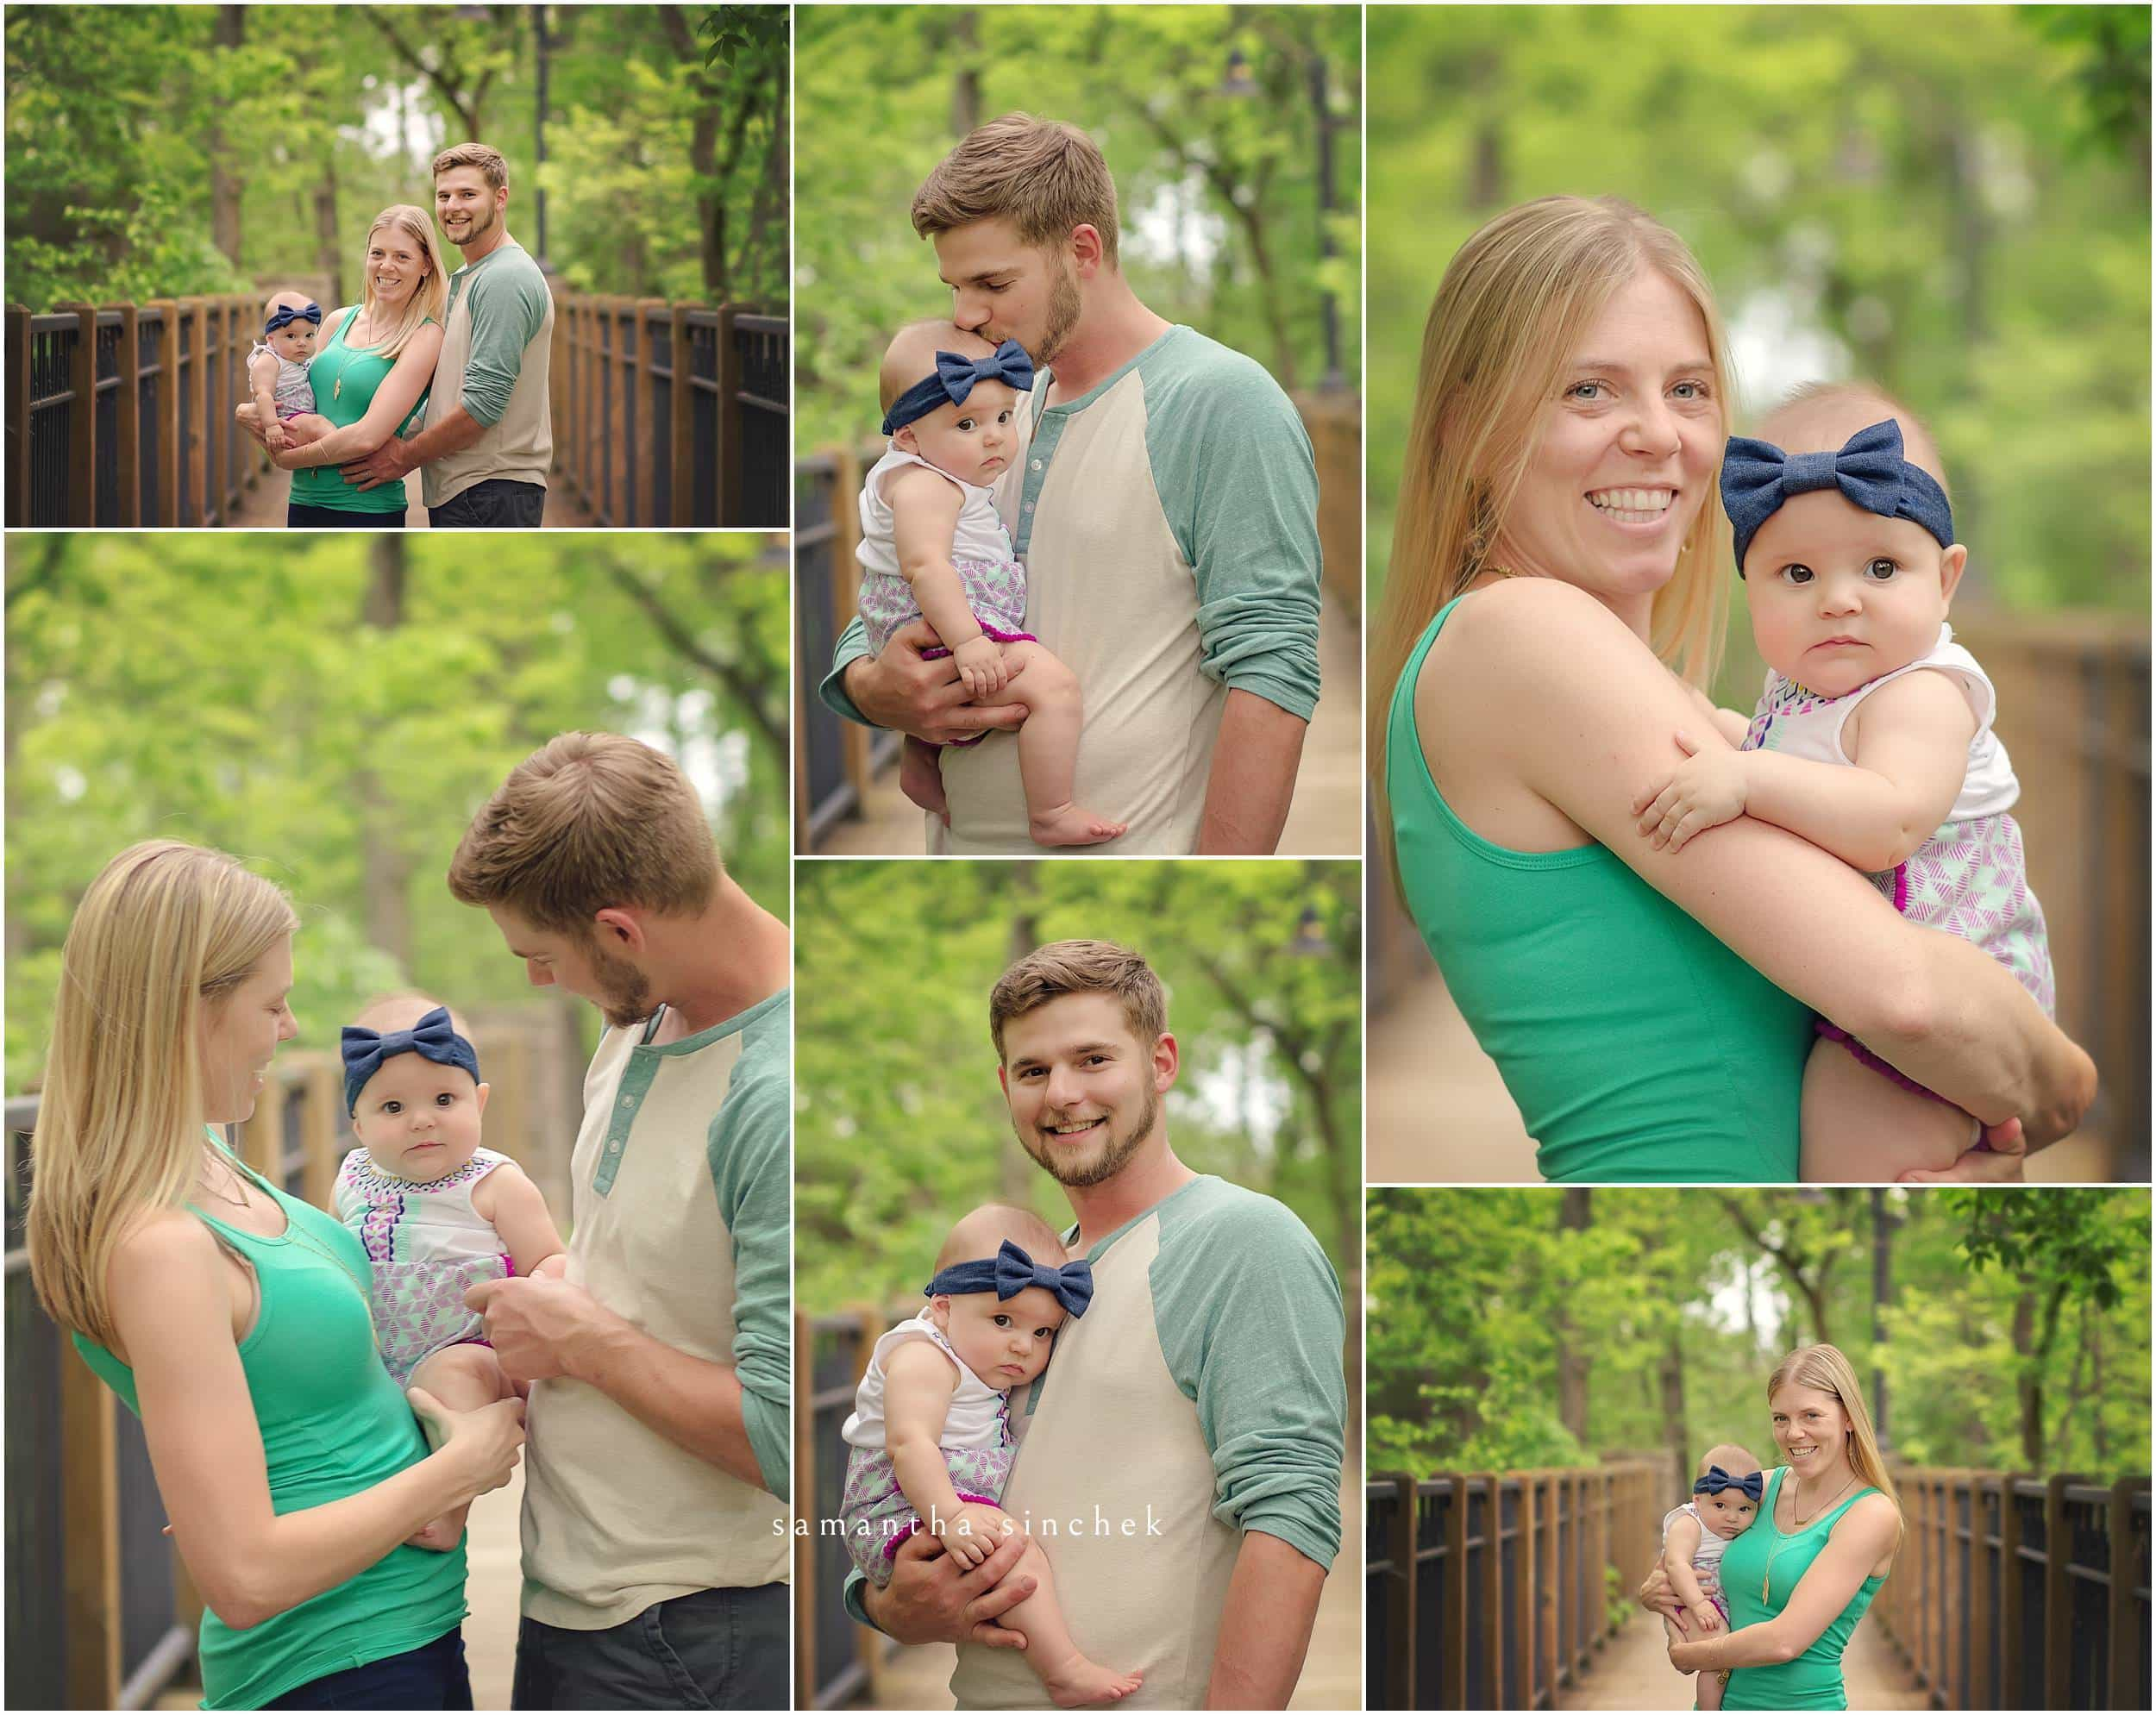 family poses at sharon woods during 6 month session with Samantha sinchek photography of cincinnati ohio